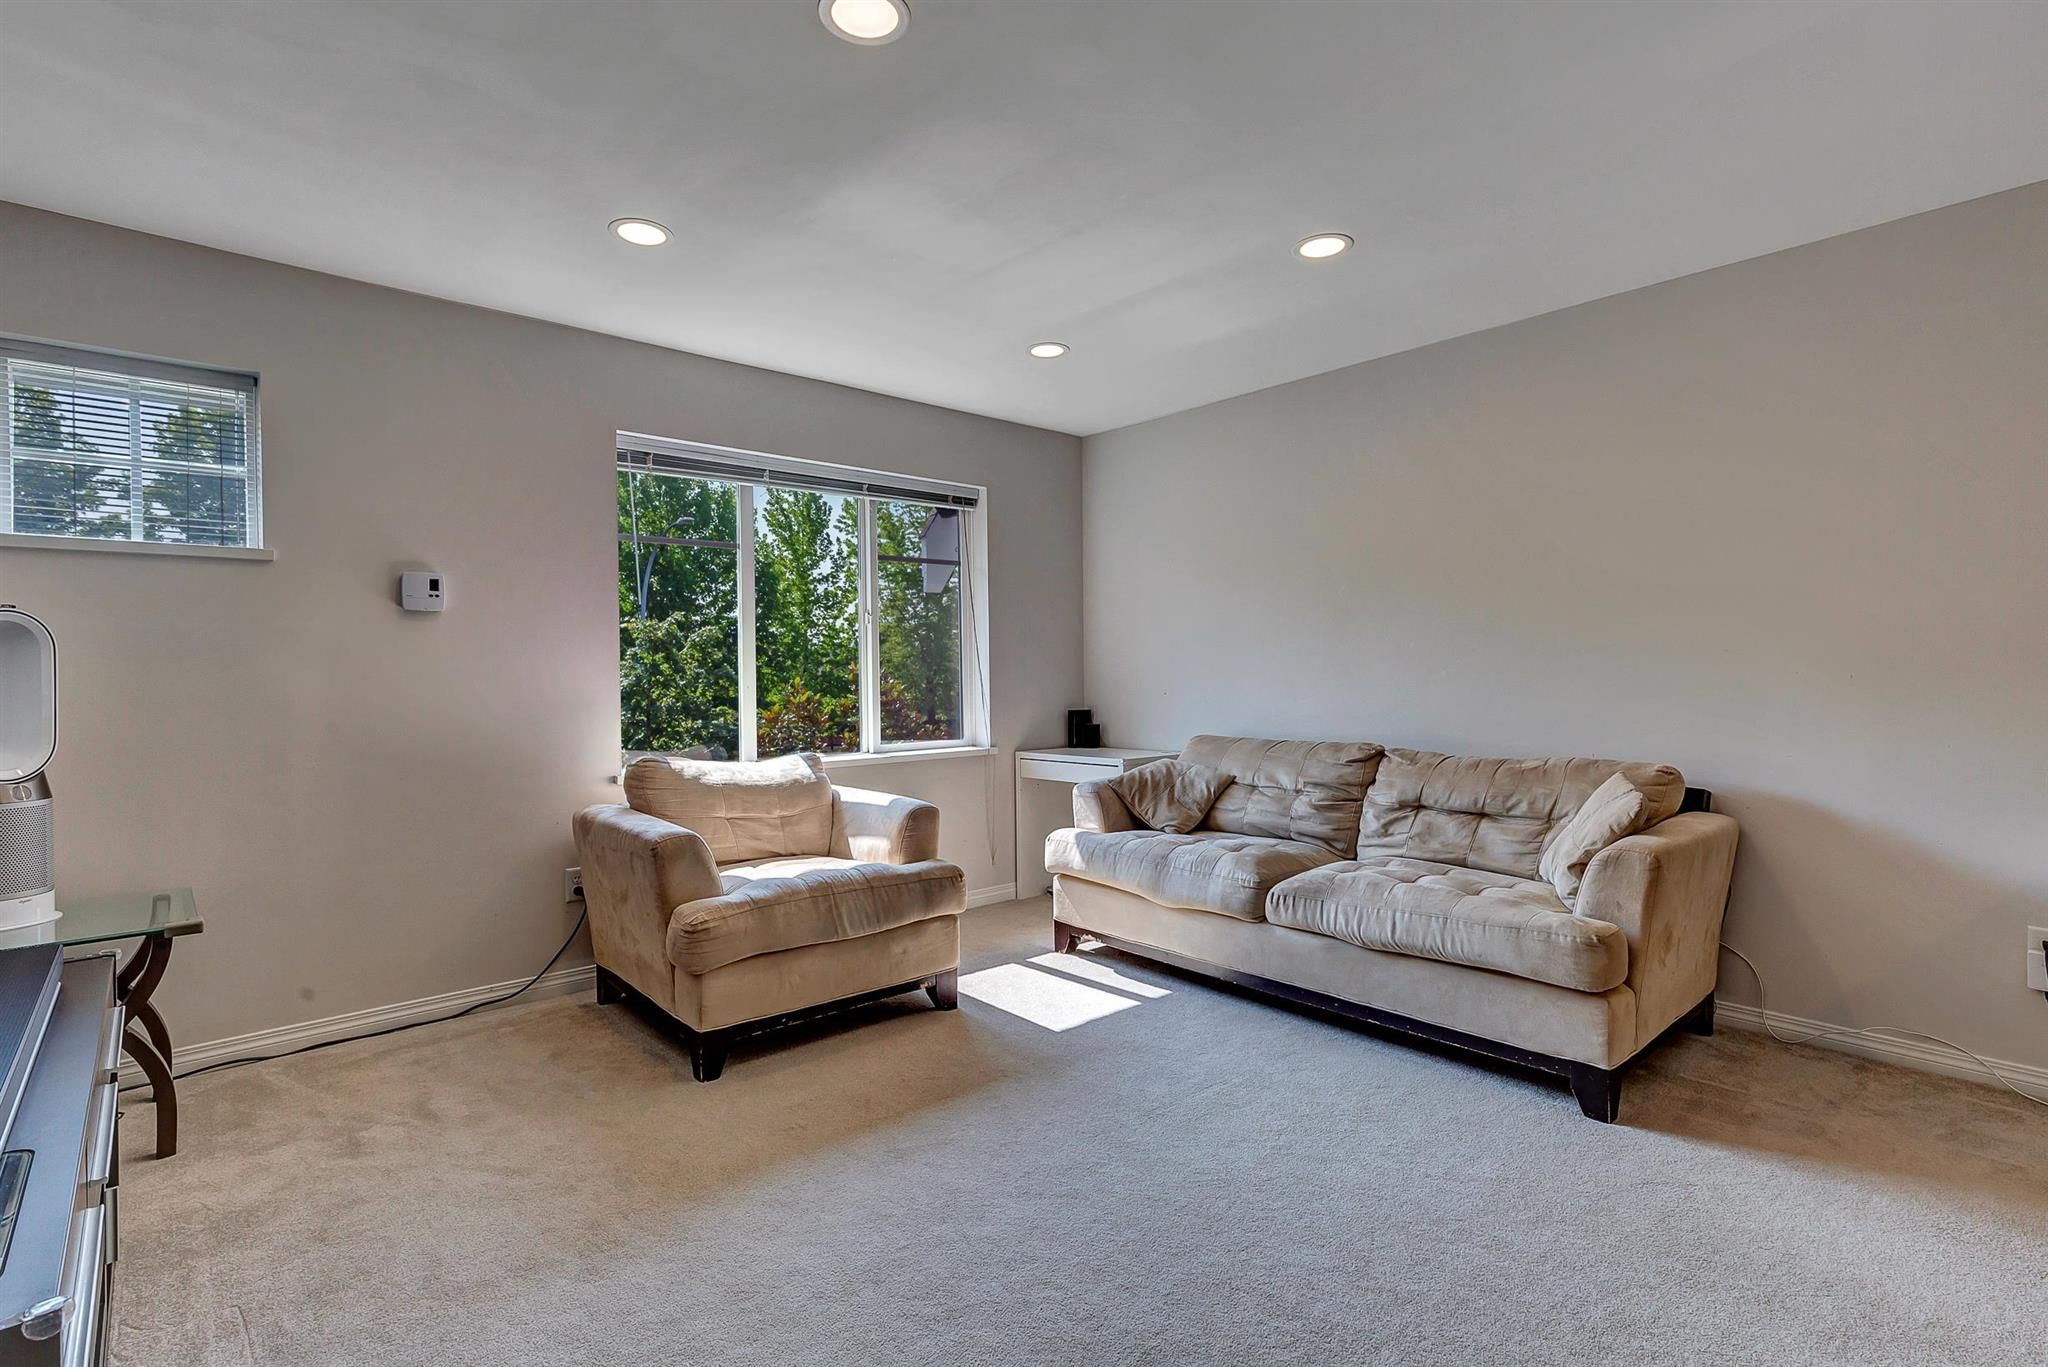 """Photo 8: Photos: 9 15871 85 Avenue in Surrey: Fleetwood Tynehead Townhouse for sale in """"Huckleberry"""" : MLS®# R2606668"""